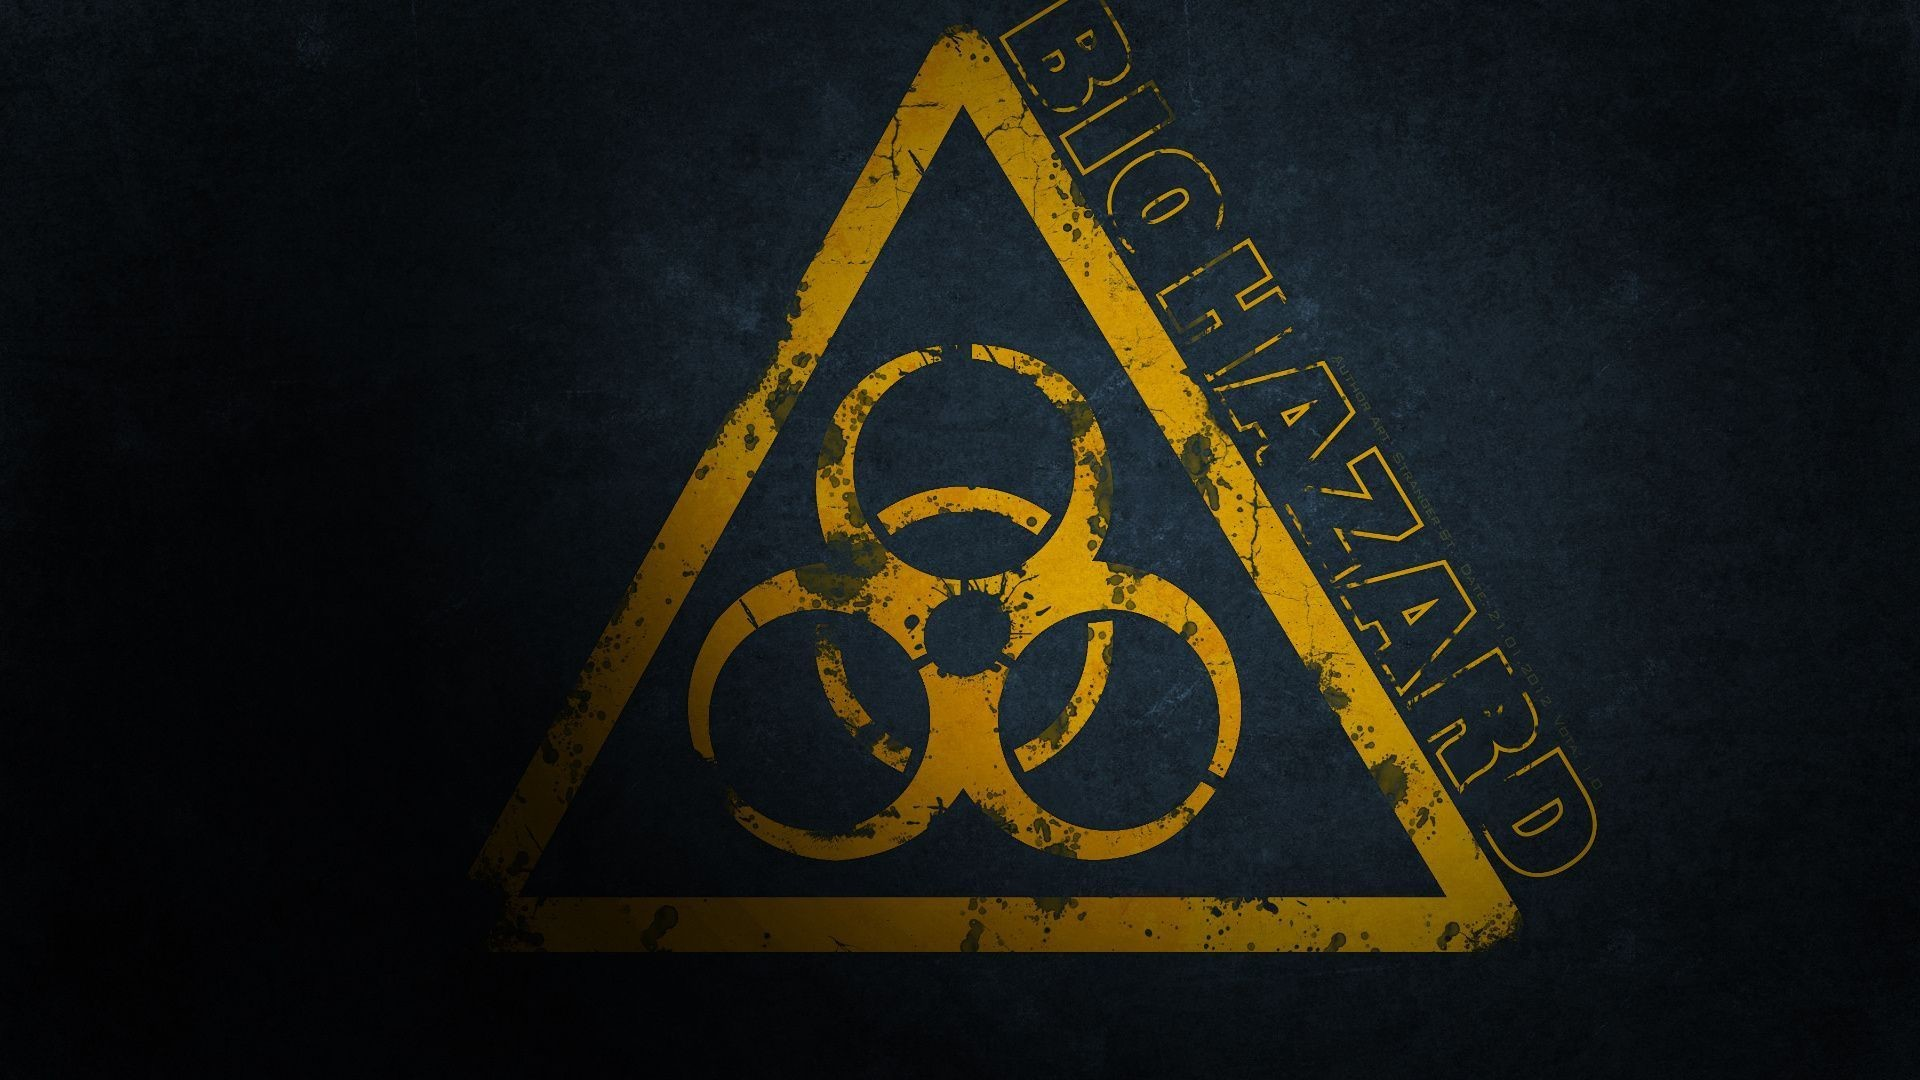 Res: 1920x1080,  biohazard, the danger sign, biohazard Wallpapers and .